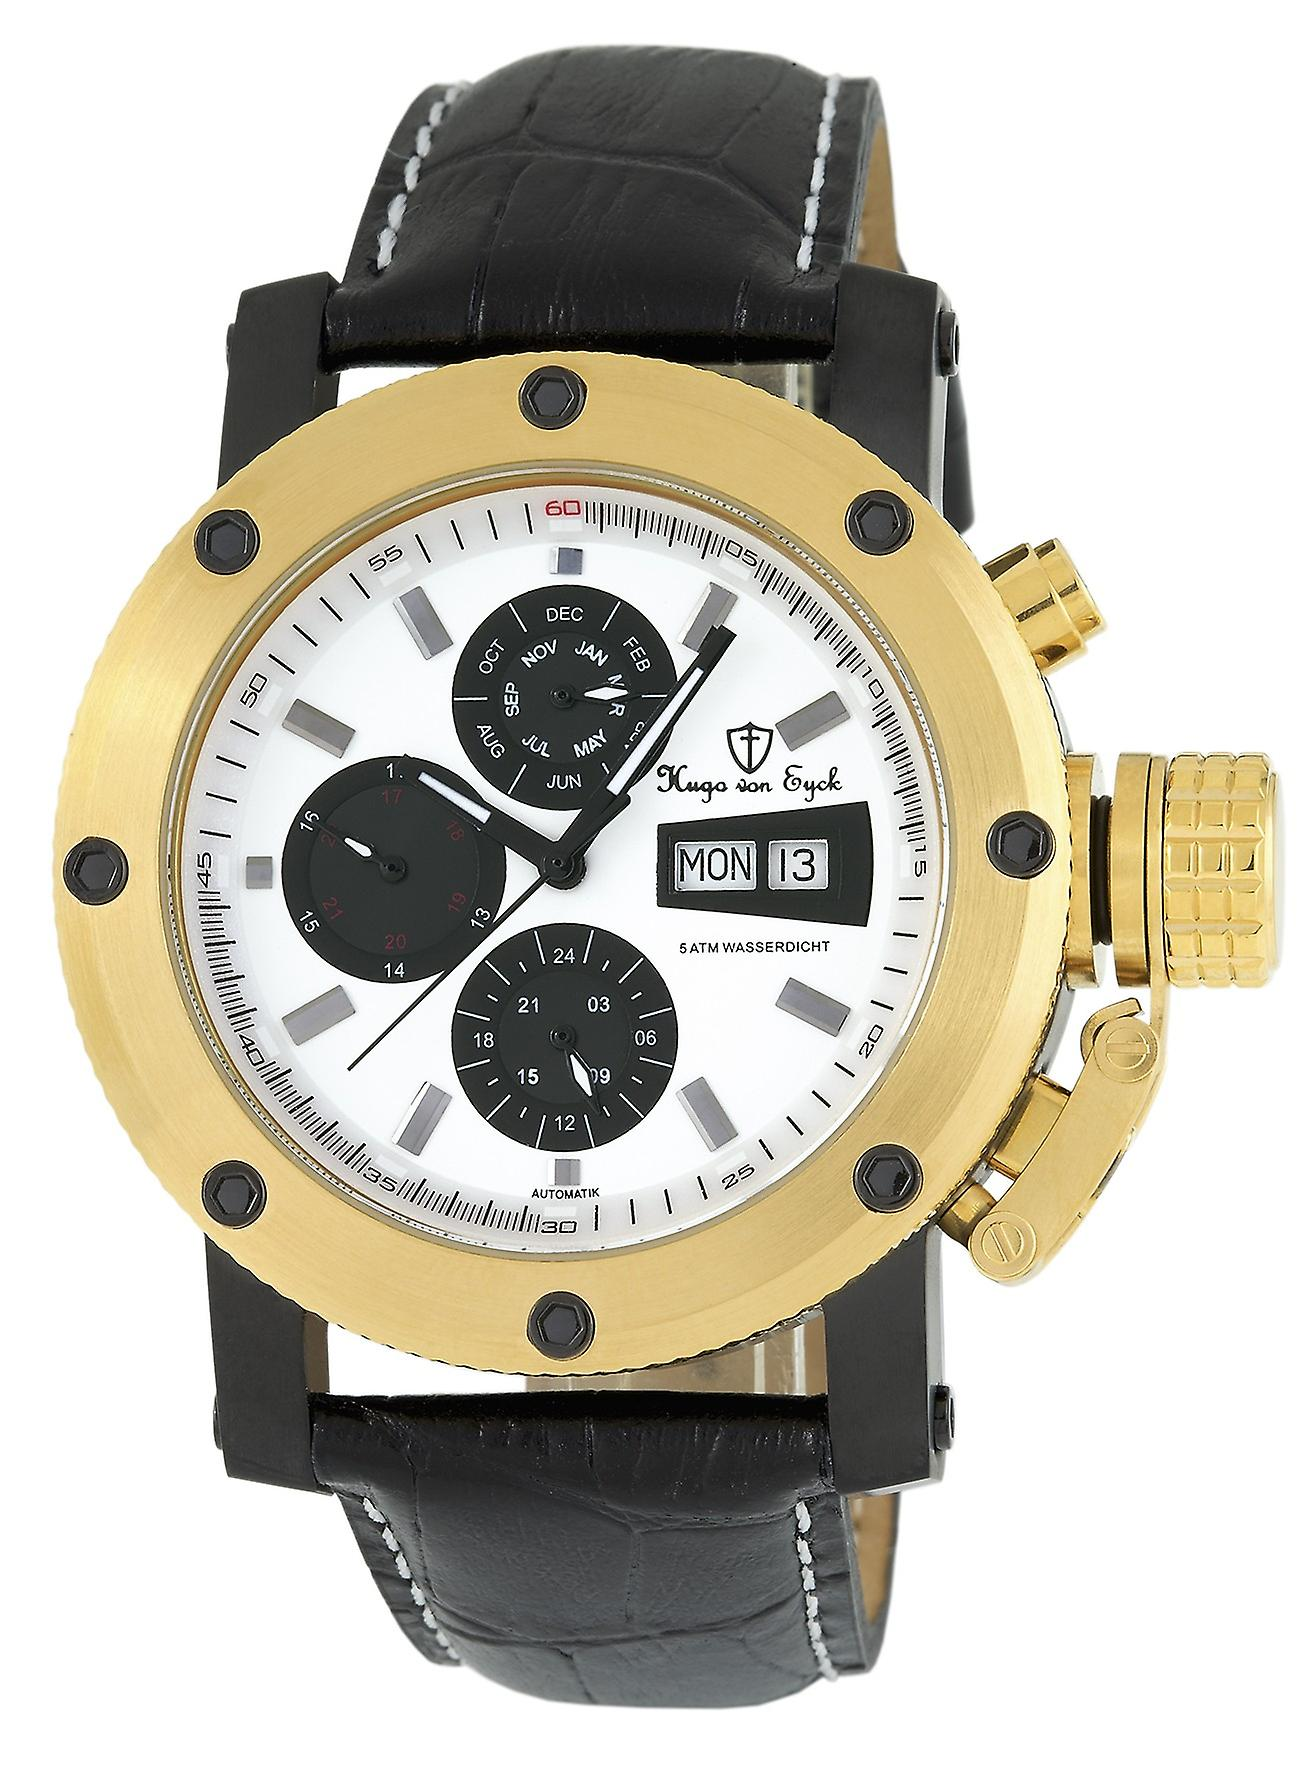 Hugo von Eyck Gents automatic watch Toliman HE303-212